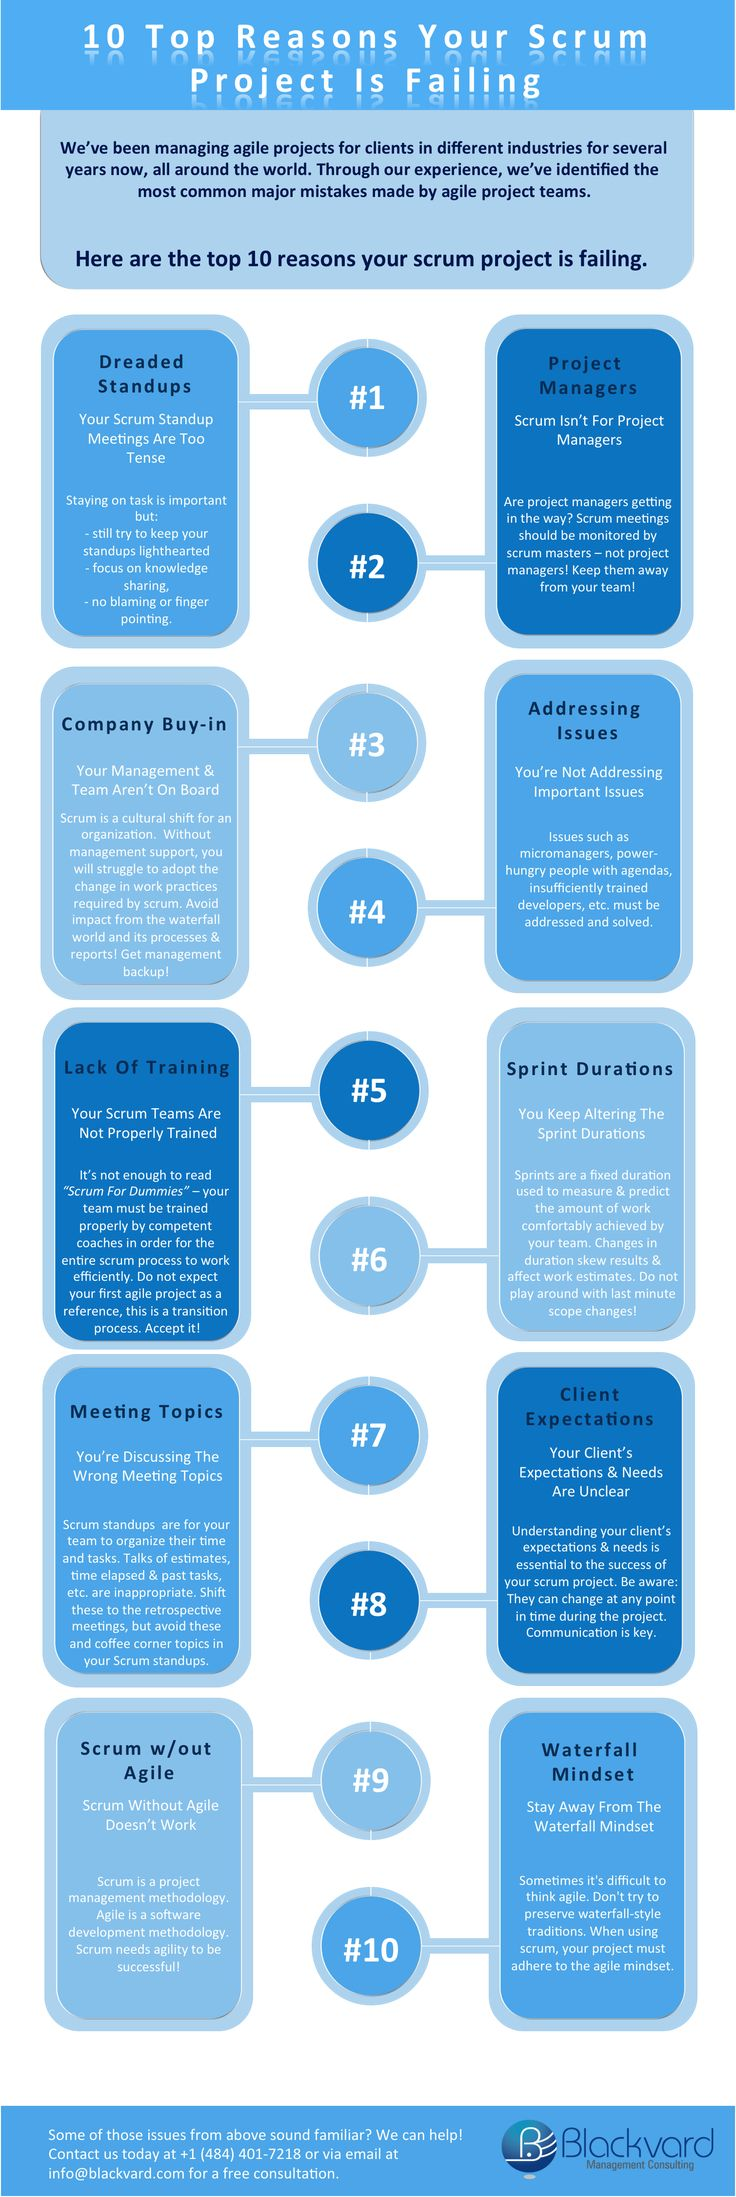 Agile Scrum Project Management Certification management : infographic: 10 top reasons your scrum project